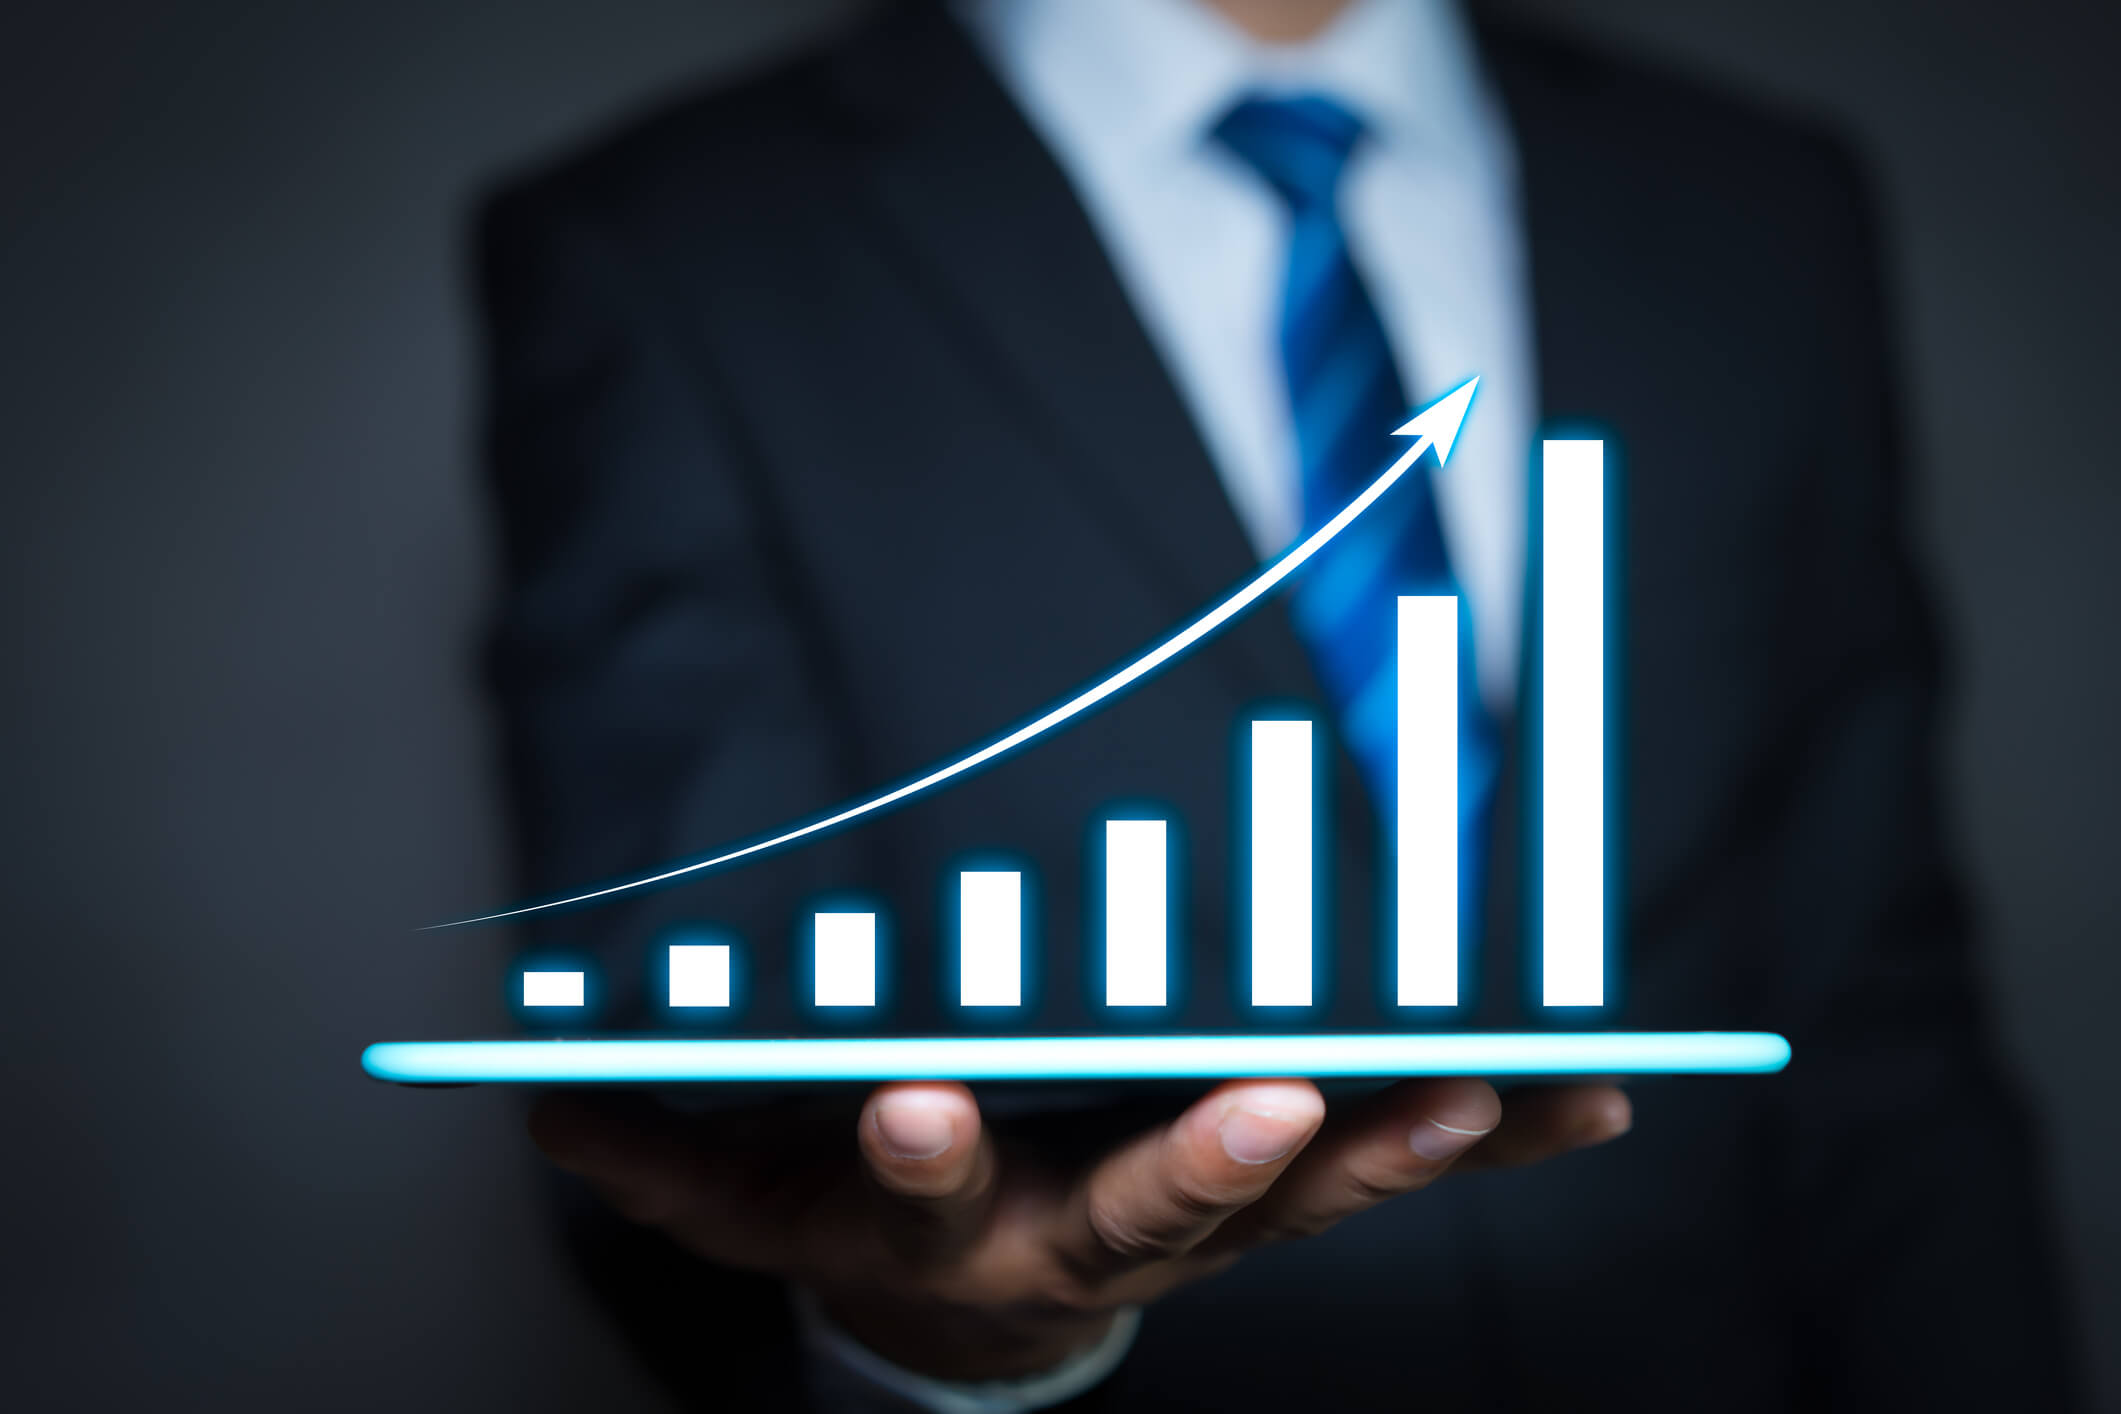 Leading Indicators Lead the Way in Integrated Risk Management